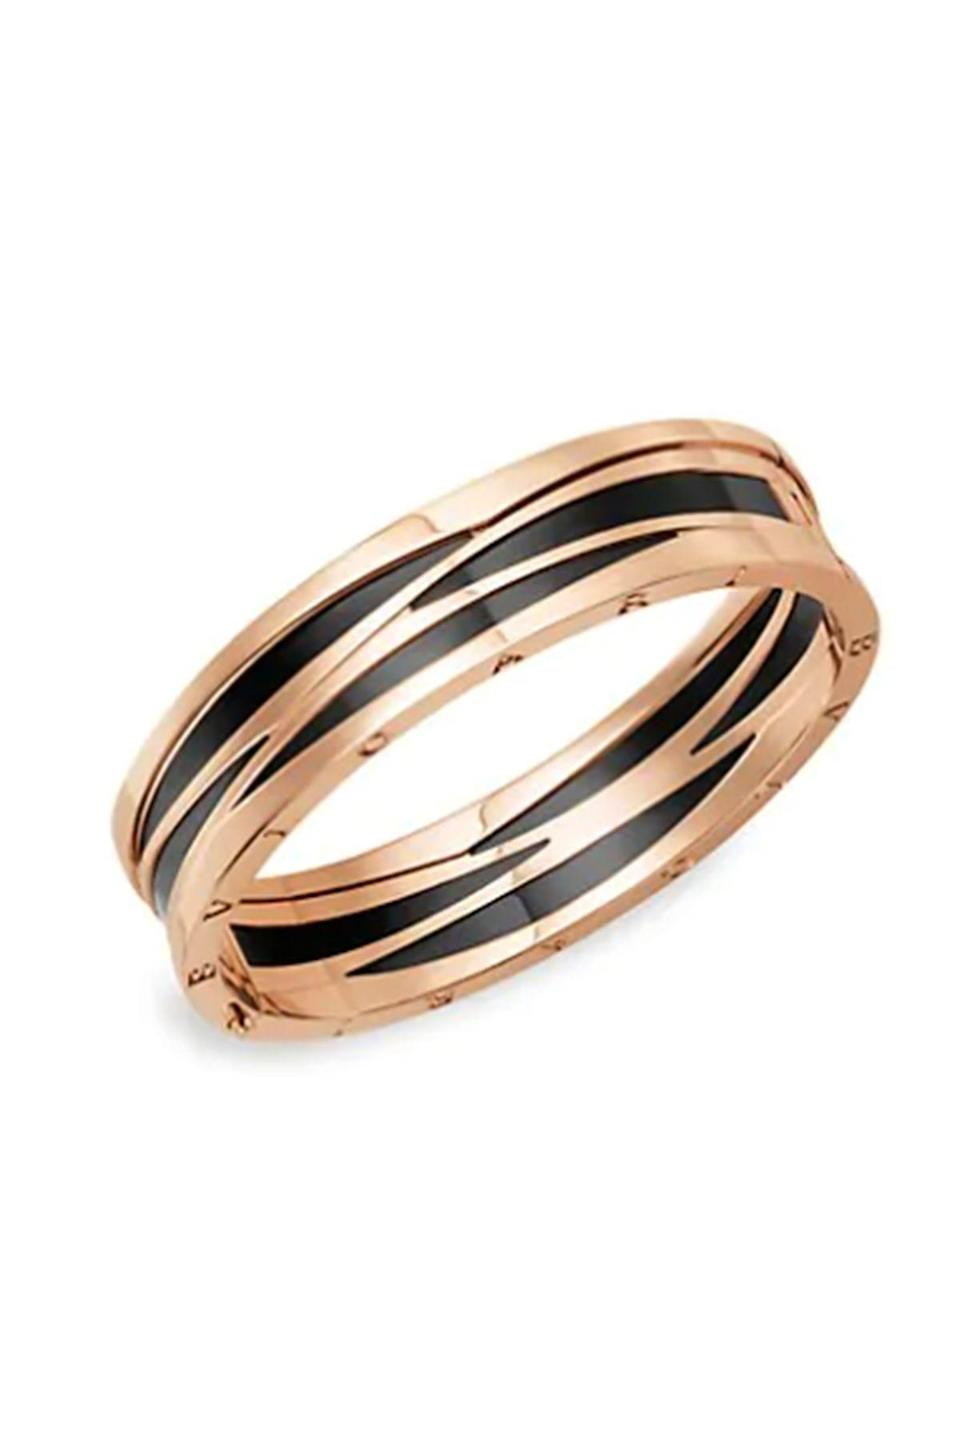 """<p><strong>Bvlgari</strong></p><p>saksfifthavenue.com</p><p><strong>$11800.00</strong></p><p><a href=""""https://go.redirectingat.com?id=74968X1596630&url=https%3A%2F%2Fwww.saksfifthavenue.com%2Fproduct%2Fbvlgari-b.zero1-design-legend-18k-rose-gold--amp--black-ceramic-hinged-bangle-bracelet-0400010715356.html%3Fdwvar_0400010715356_color%3DROSE%2BGOLD&sref=https%3A%2F%2Fwww.townandcountrymag.com%2Fstyle%2Fjewelry-and-watches%2Fg35016765%2Fbest-bracelets-for-women%2F"""" rel=""""nofollow noopener"""" target=""""_blank"""" data-ylk=""""slk:Shop Now"""" class=""""link rapid-noclick-resp"""">Shop Now</a></p><p>If you want to make a statement, this rose gold and black ceramic bracelet by Bulgari will do the trick.</p>"""